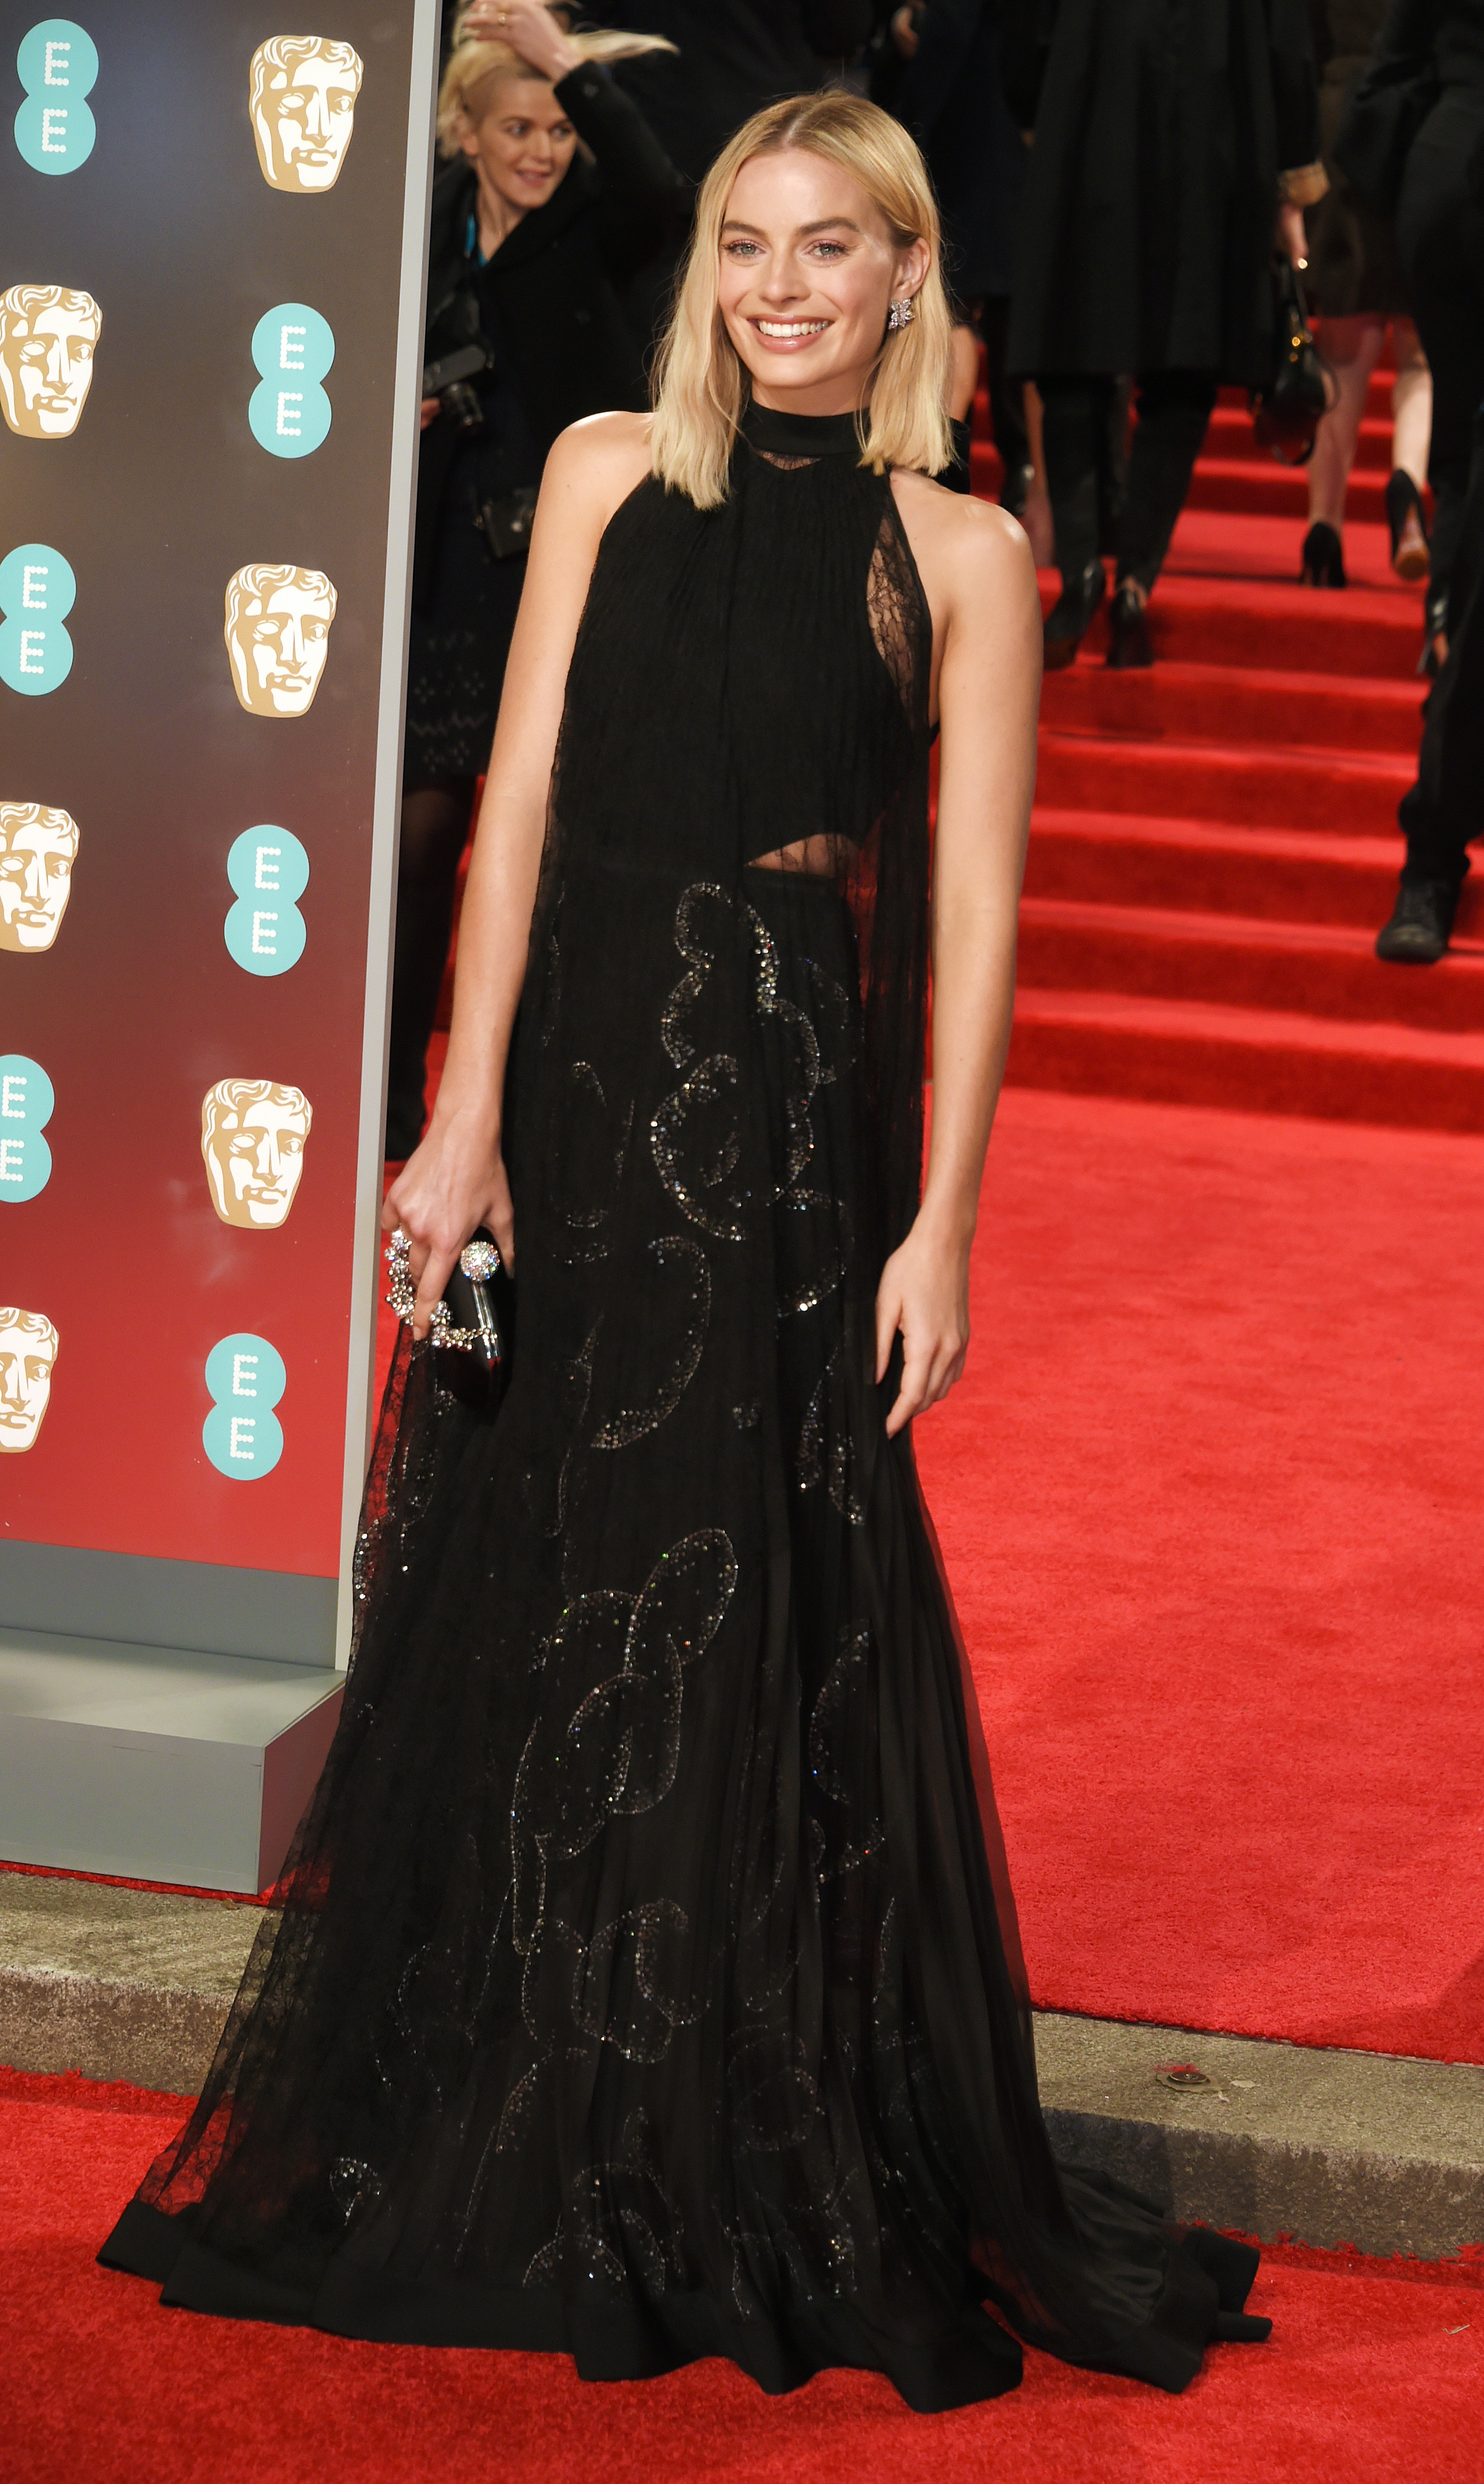 <p>Margot Robbie leads the way in the style stakes at the 71st BAFTA film awards in London.</p> <p>It was another black-out on the red carpet with the stars donning black to honour the Time's Up movement. Robbie nailed the dress code in Givenchy, while Jennifer Lawrence Jennifer stunned in Dior, fresh off the runway from their Spring 2018 show.</p> <p>Meanwhile, Dutchess of Cambridge, Kate Middleton, defied the all-black dress code wearing an olive green dress with a black ribbon by her go-to designer, Jenny Packham. </p> <p>Click through to check out all the highlights from the red carpet.</p> <p> </p>